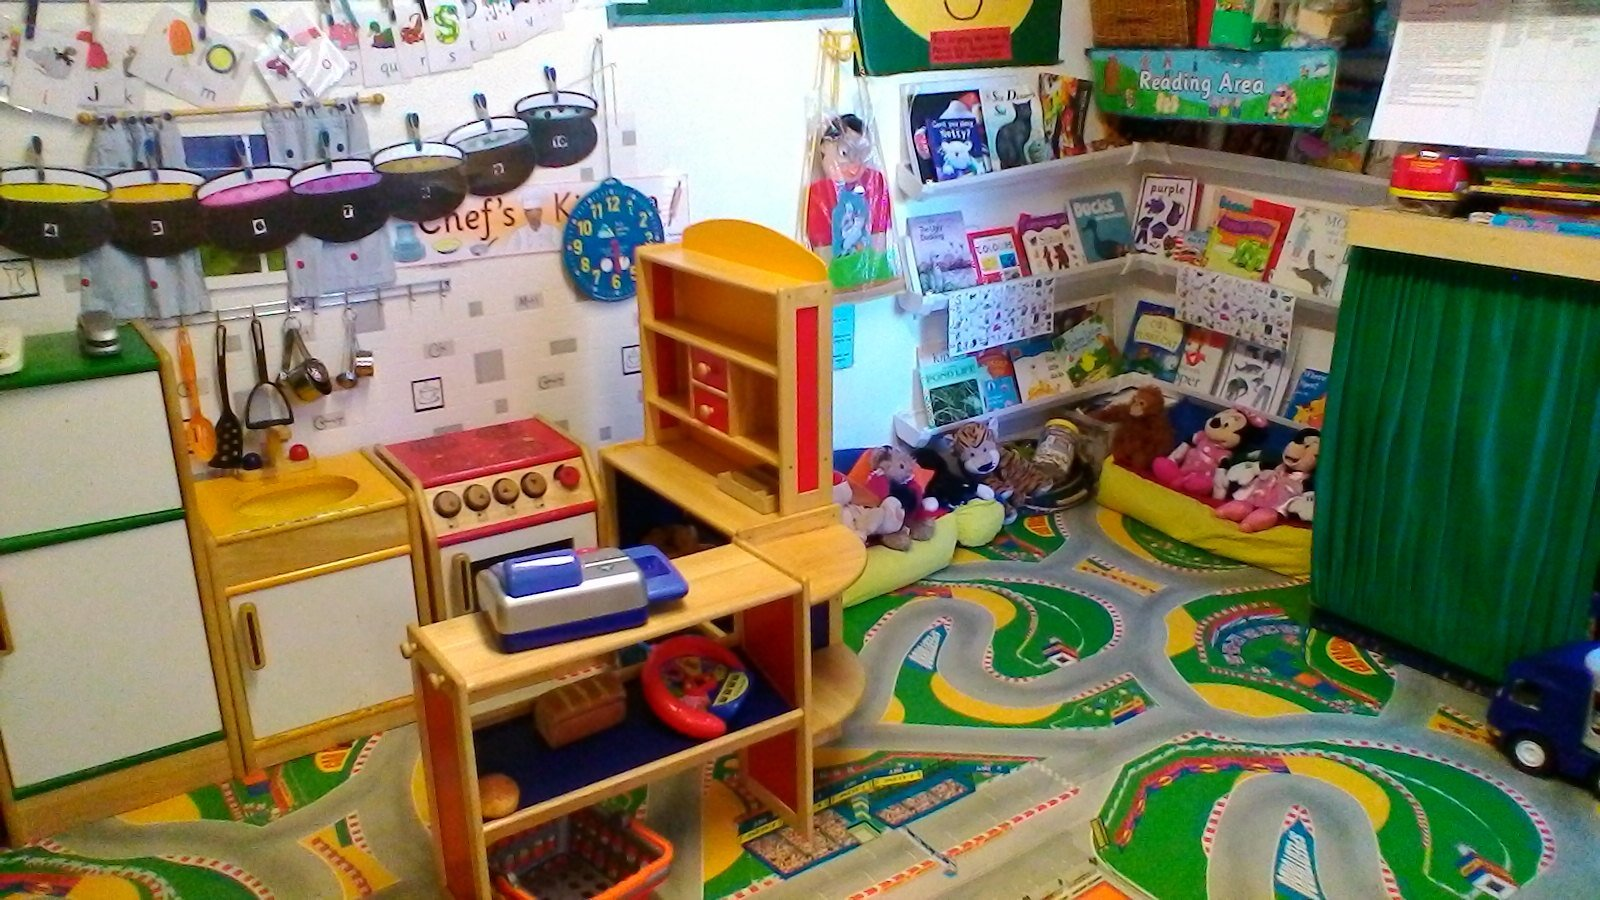 Kids Inc Childrens Play Area